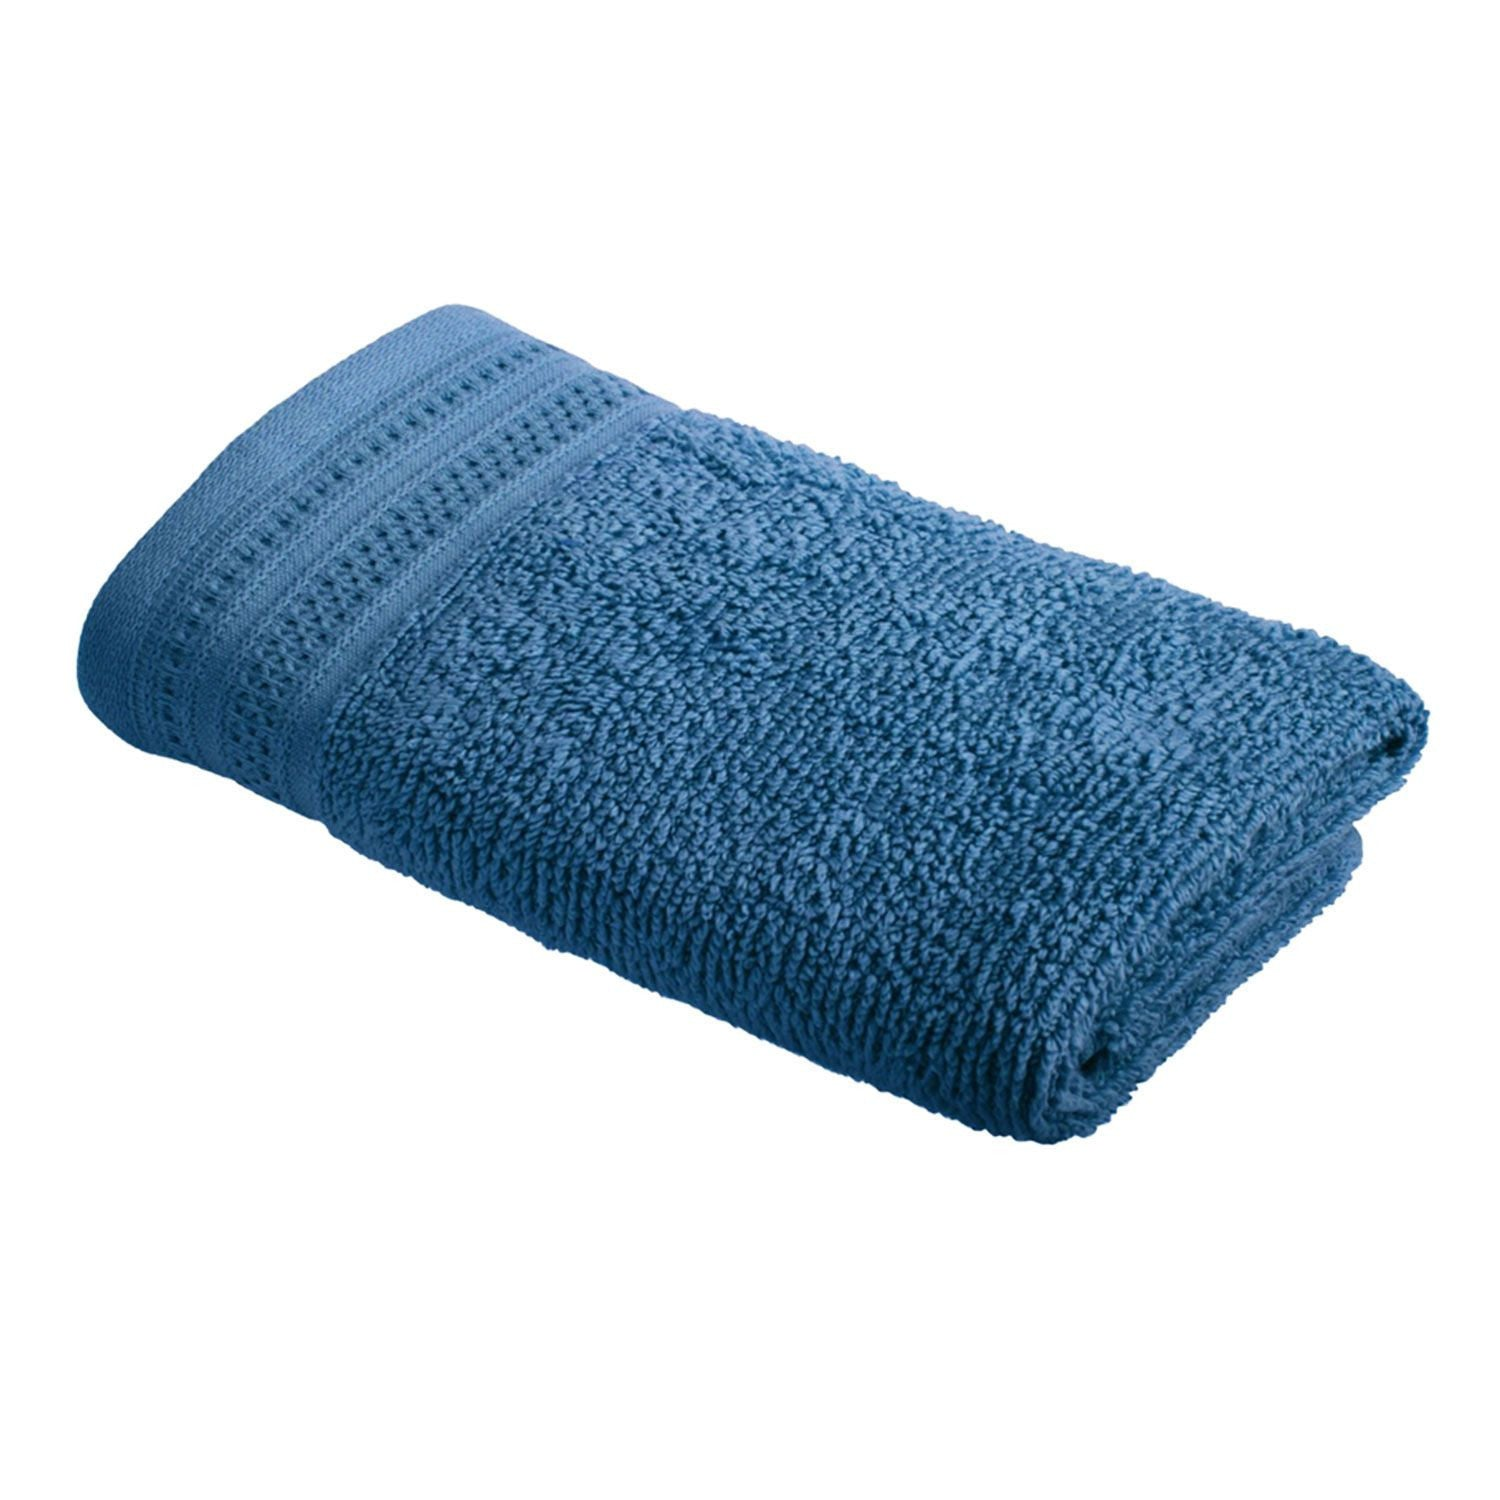 Crowning Touch Hand Towel - Denim